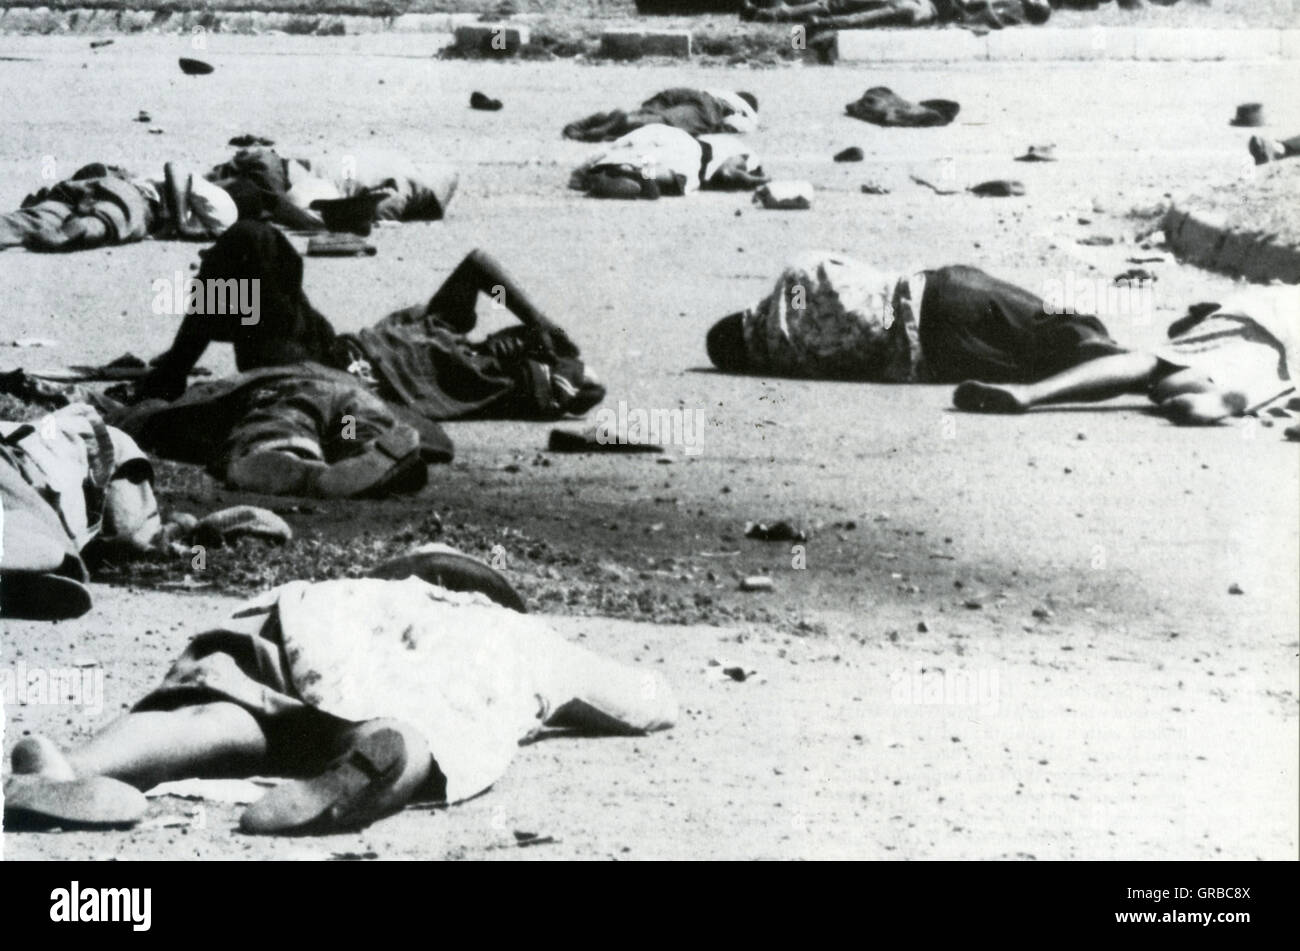 an introduction to the history of the sharpeville massacre In the black township of sharpeville, near johannesburg, south africa, afrikaner police open fire on a group of unarmed black south african demonstrators, killing 69 people and wounding 180.